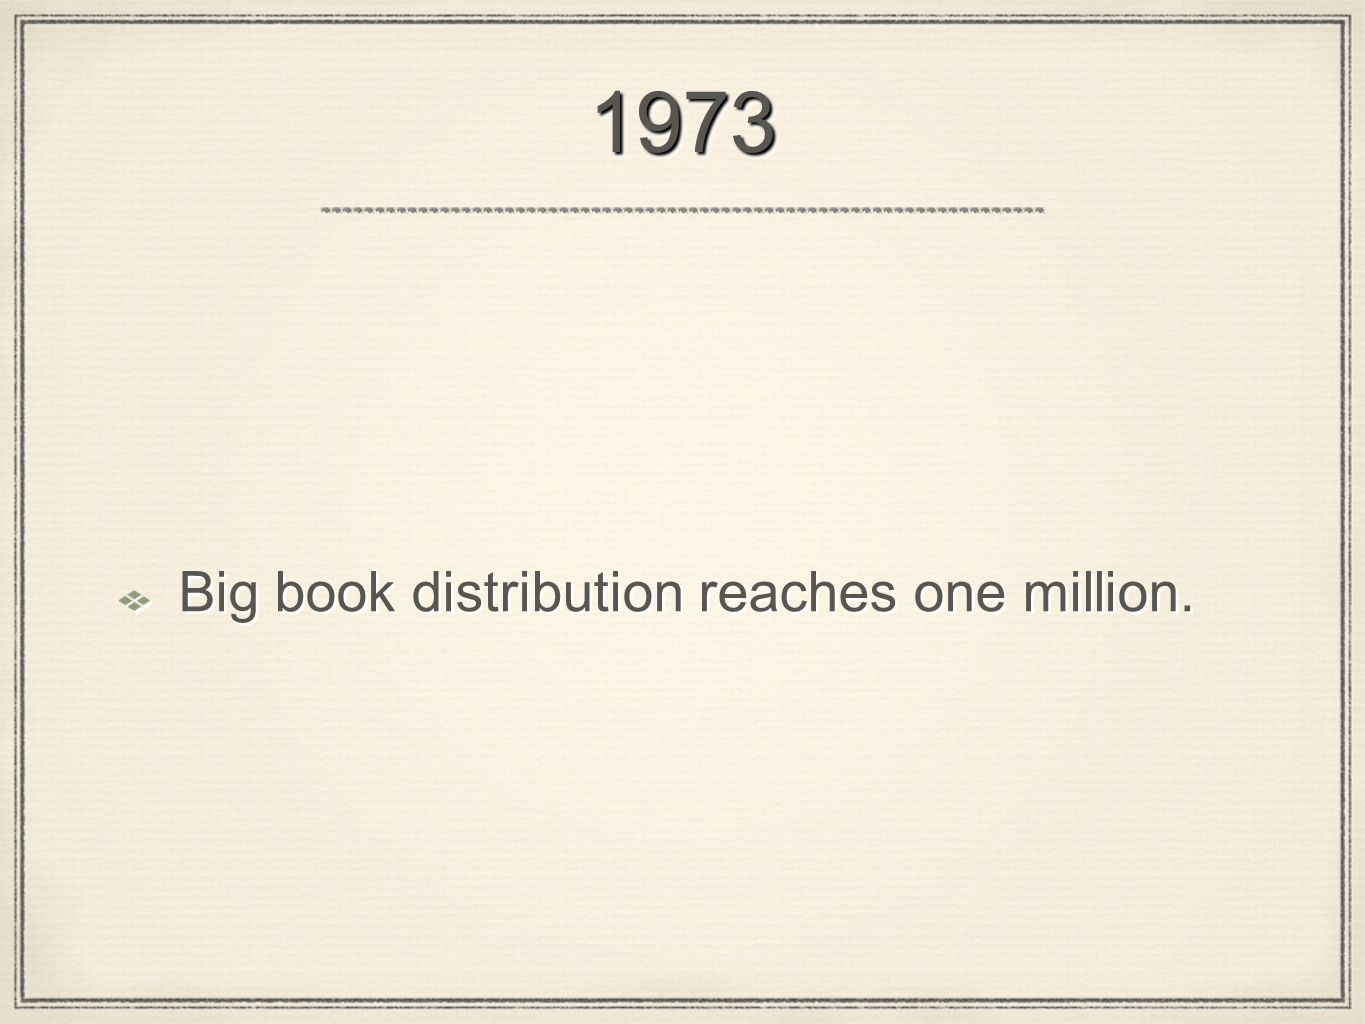 19731973 Big book distribution reaches one million.